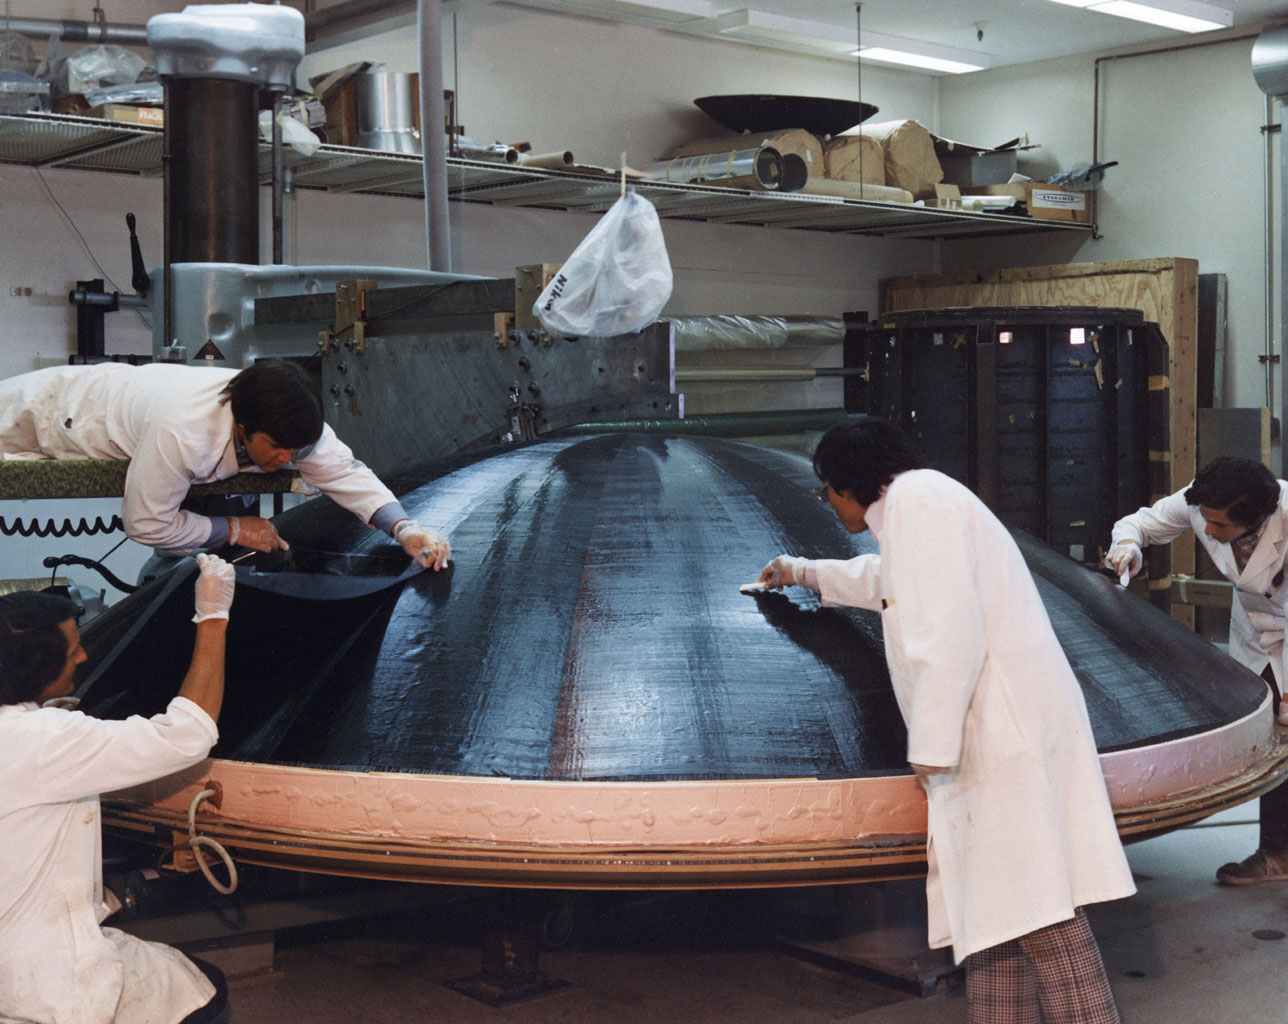 Engineers are engaged in the construction of a high gain antenna for one of NASA's Voyager spacecraft in This archival photo taken on October 29, 1975.